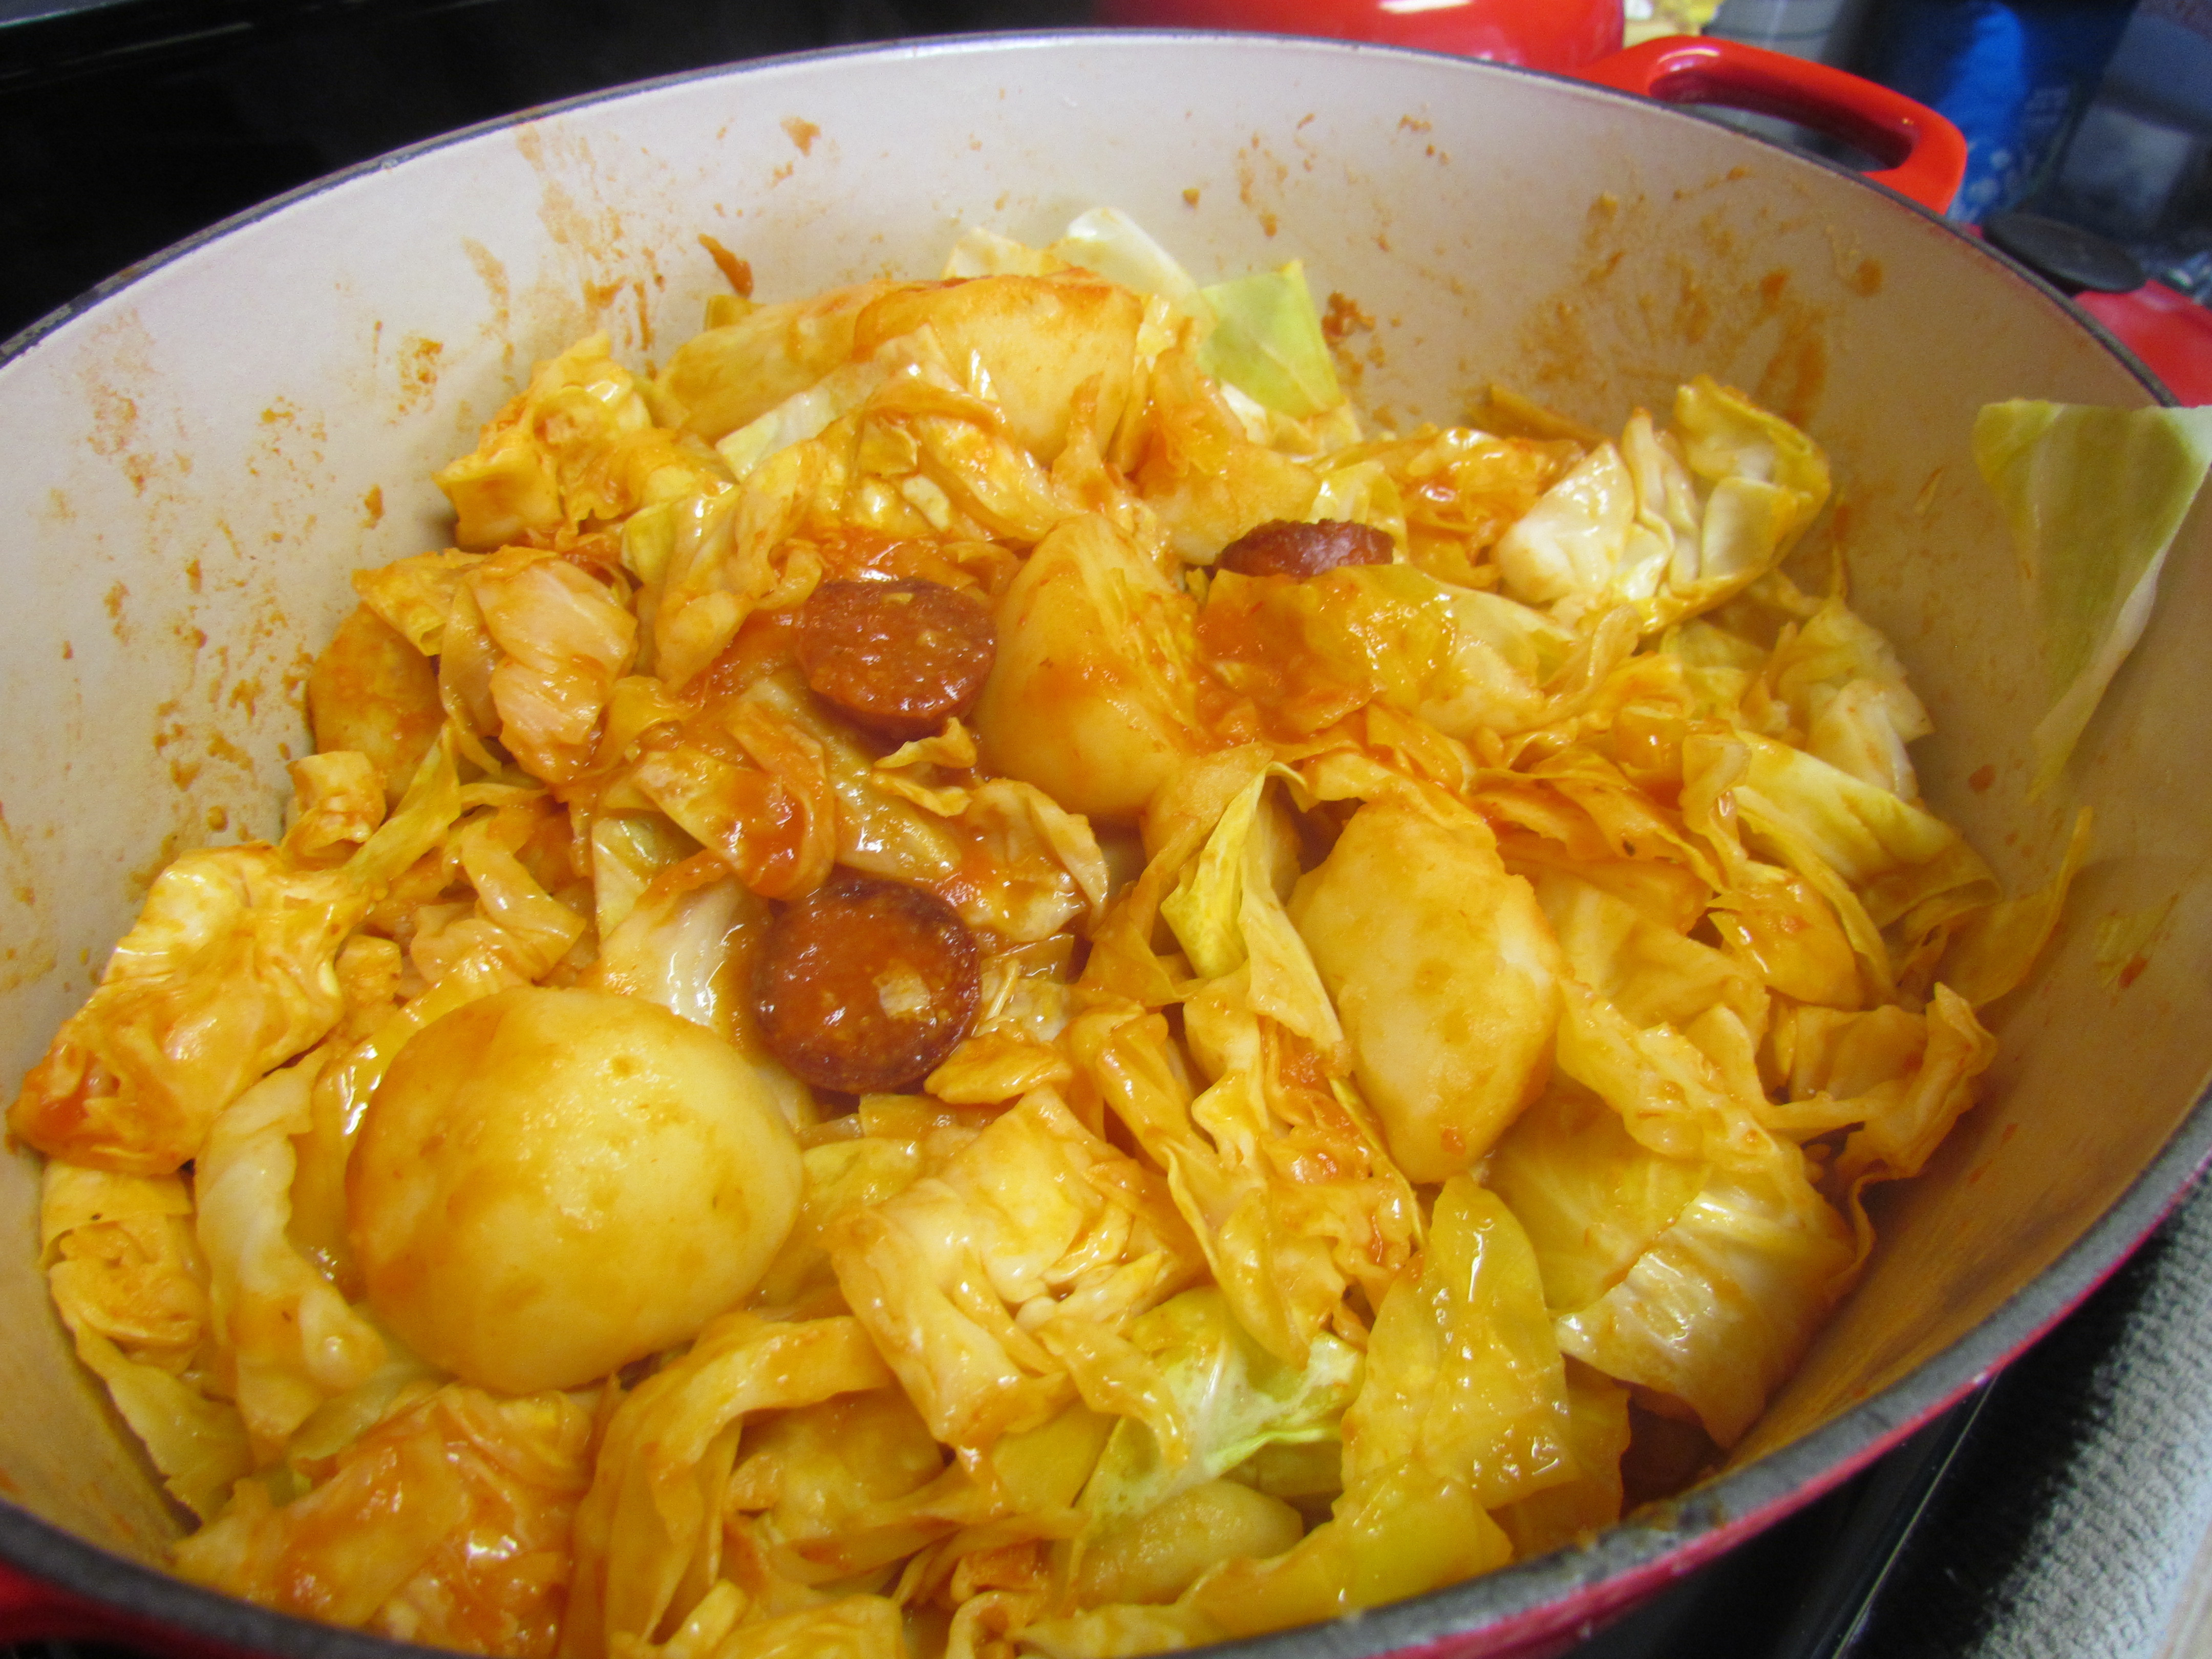 Cabbage And Potatoes  Nanny's Cabbage Potatoes and Pepperoni